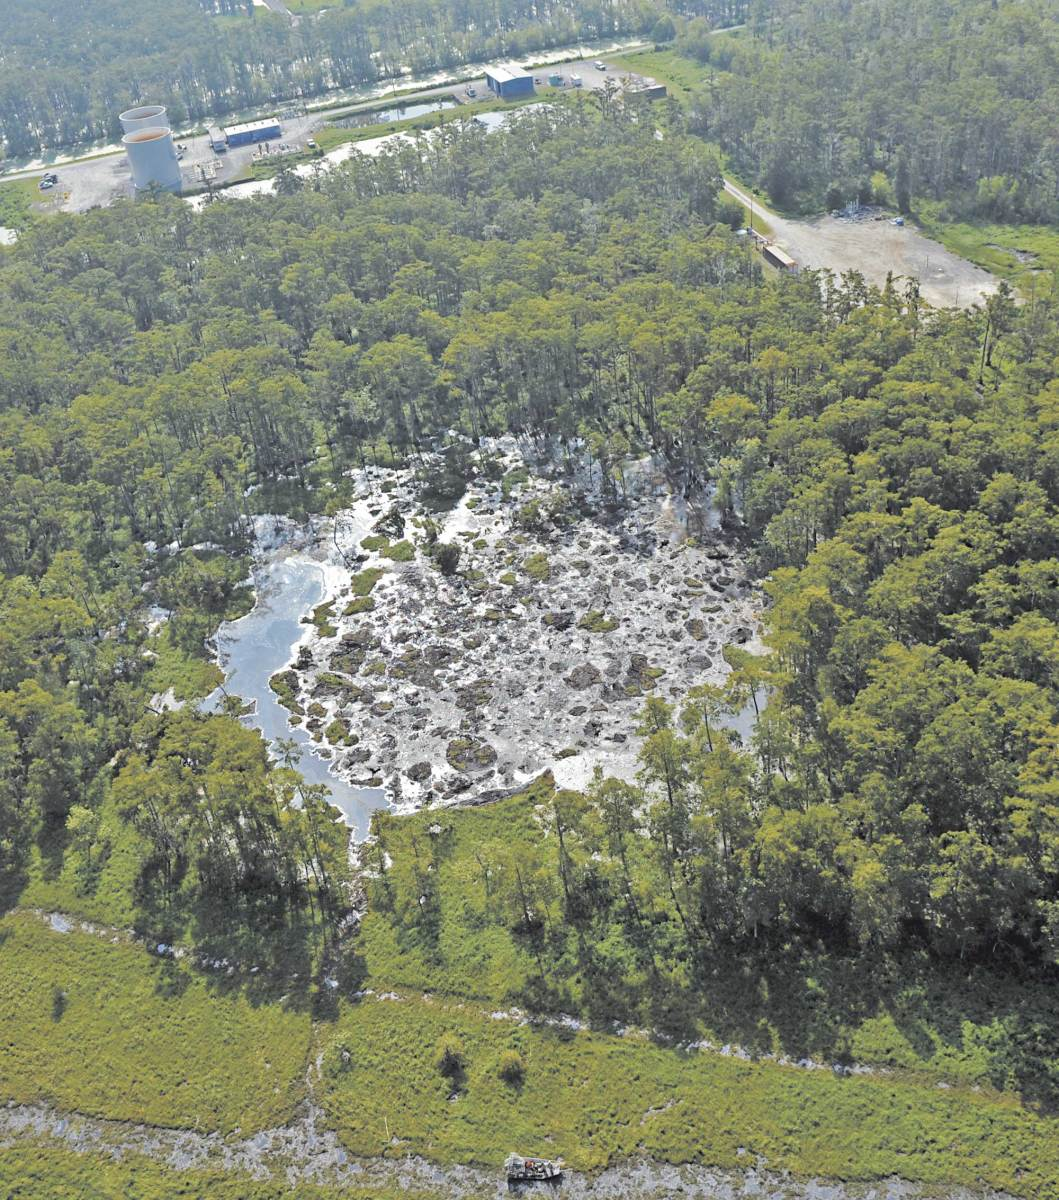 As the sinkhole keeps growing evacuations have begun fearing radioactive pollution and explosions.